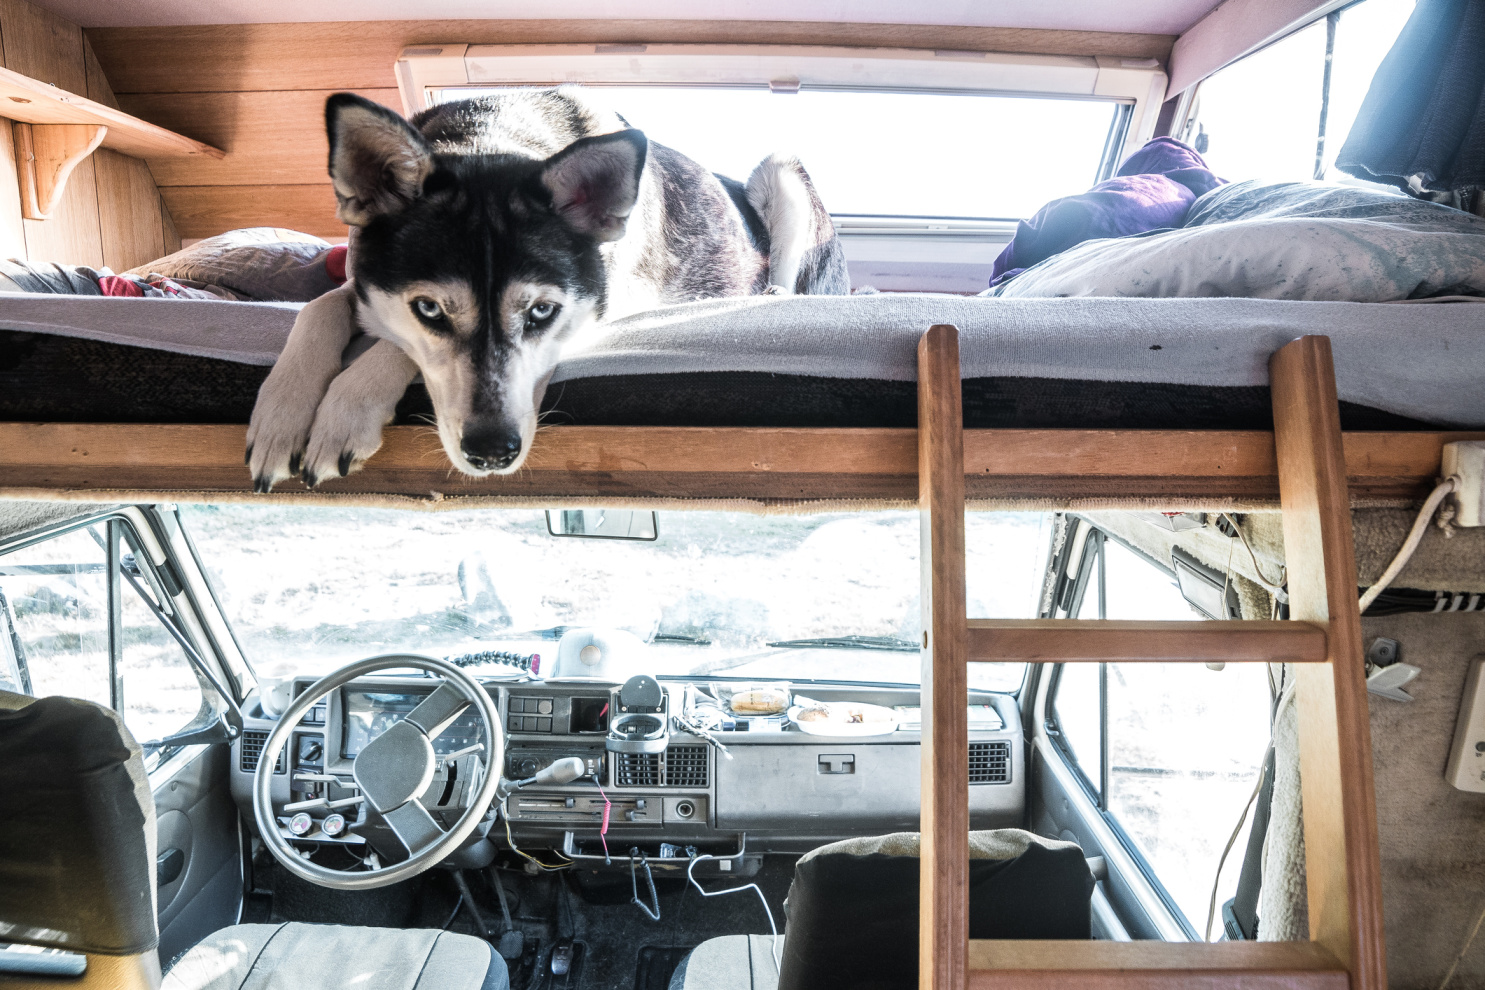 Cute black and white dog laying on RV bunk bed